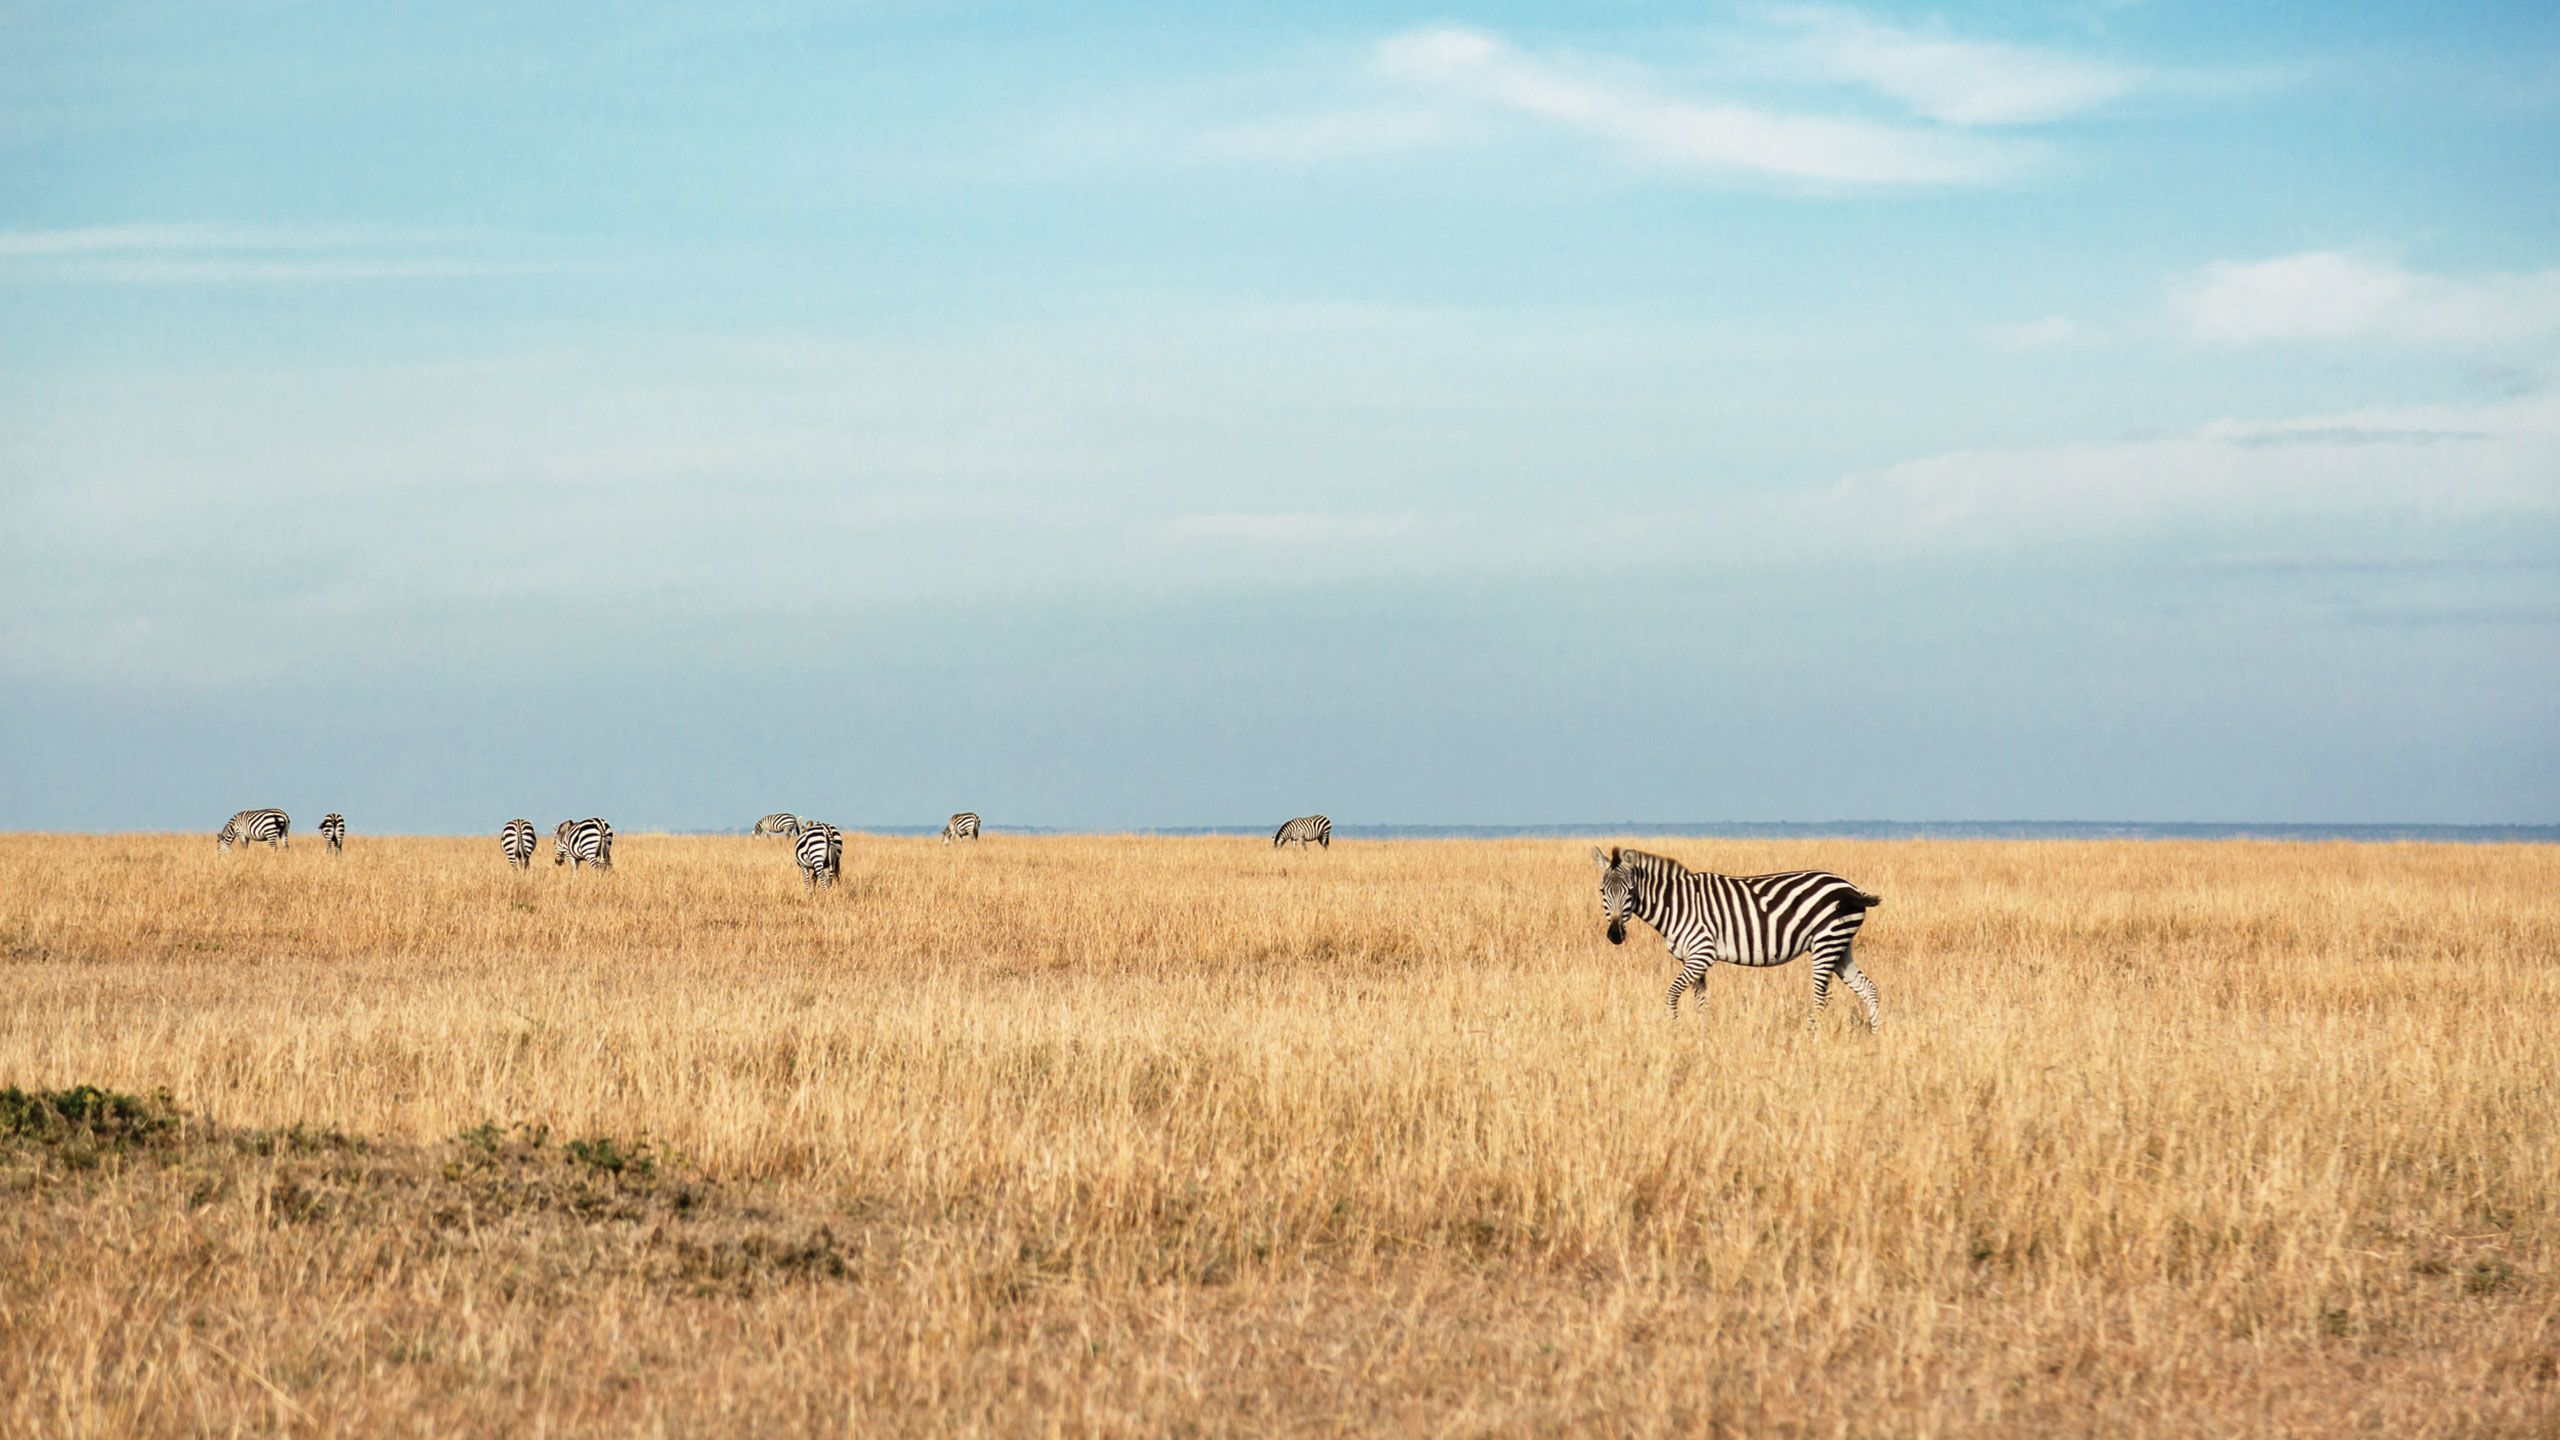 Zebras in the Masai Mara National Reserve during a game drive with the Fairmont Mara Safari Club. Photo by Susan Portnoy